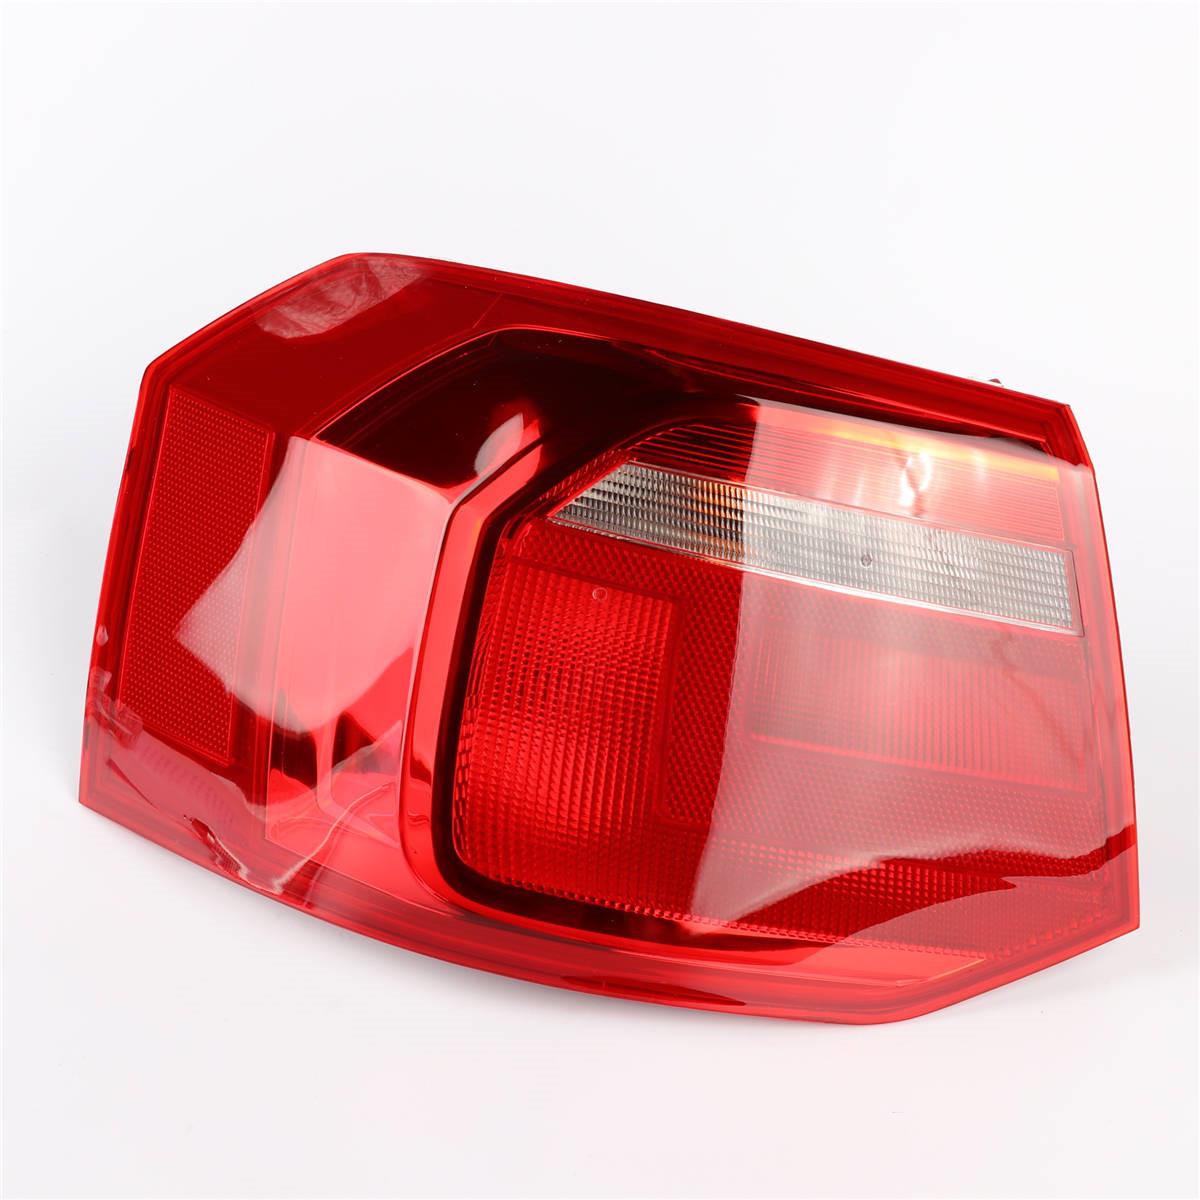 Left Side OEM 1Pcs Red Color LED Light Tail Lights Rear Lamp For VW Jetta Mk2 L31G 945 095 2pcs oem left